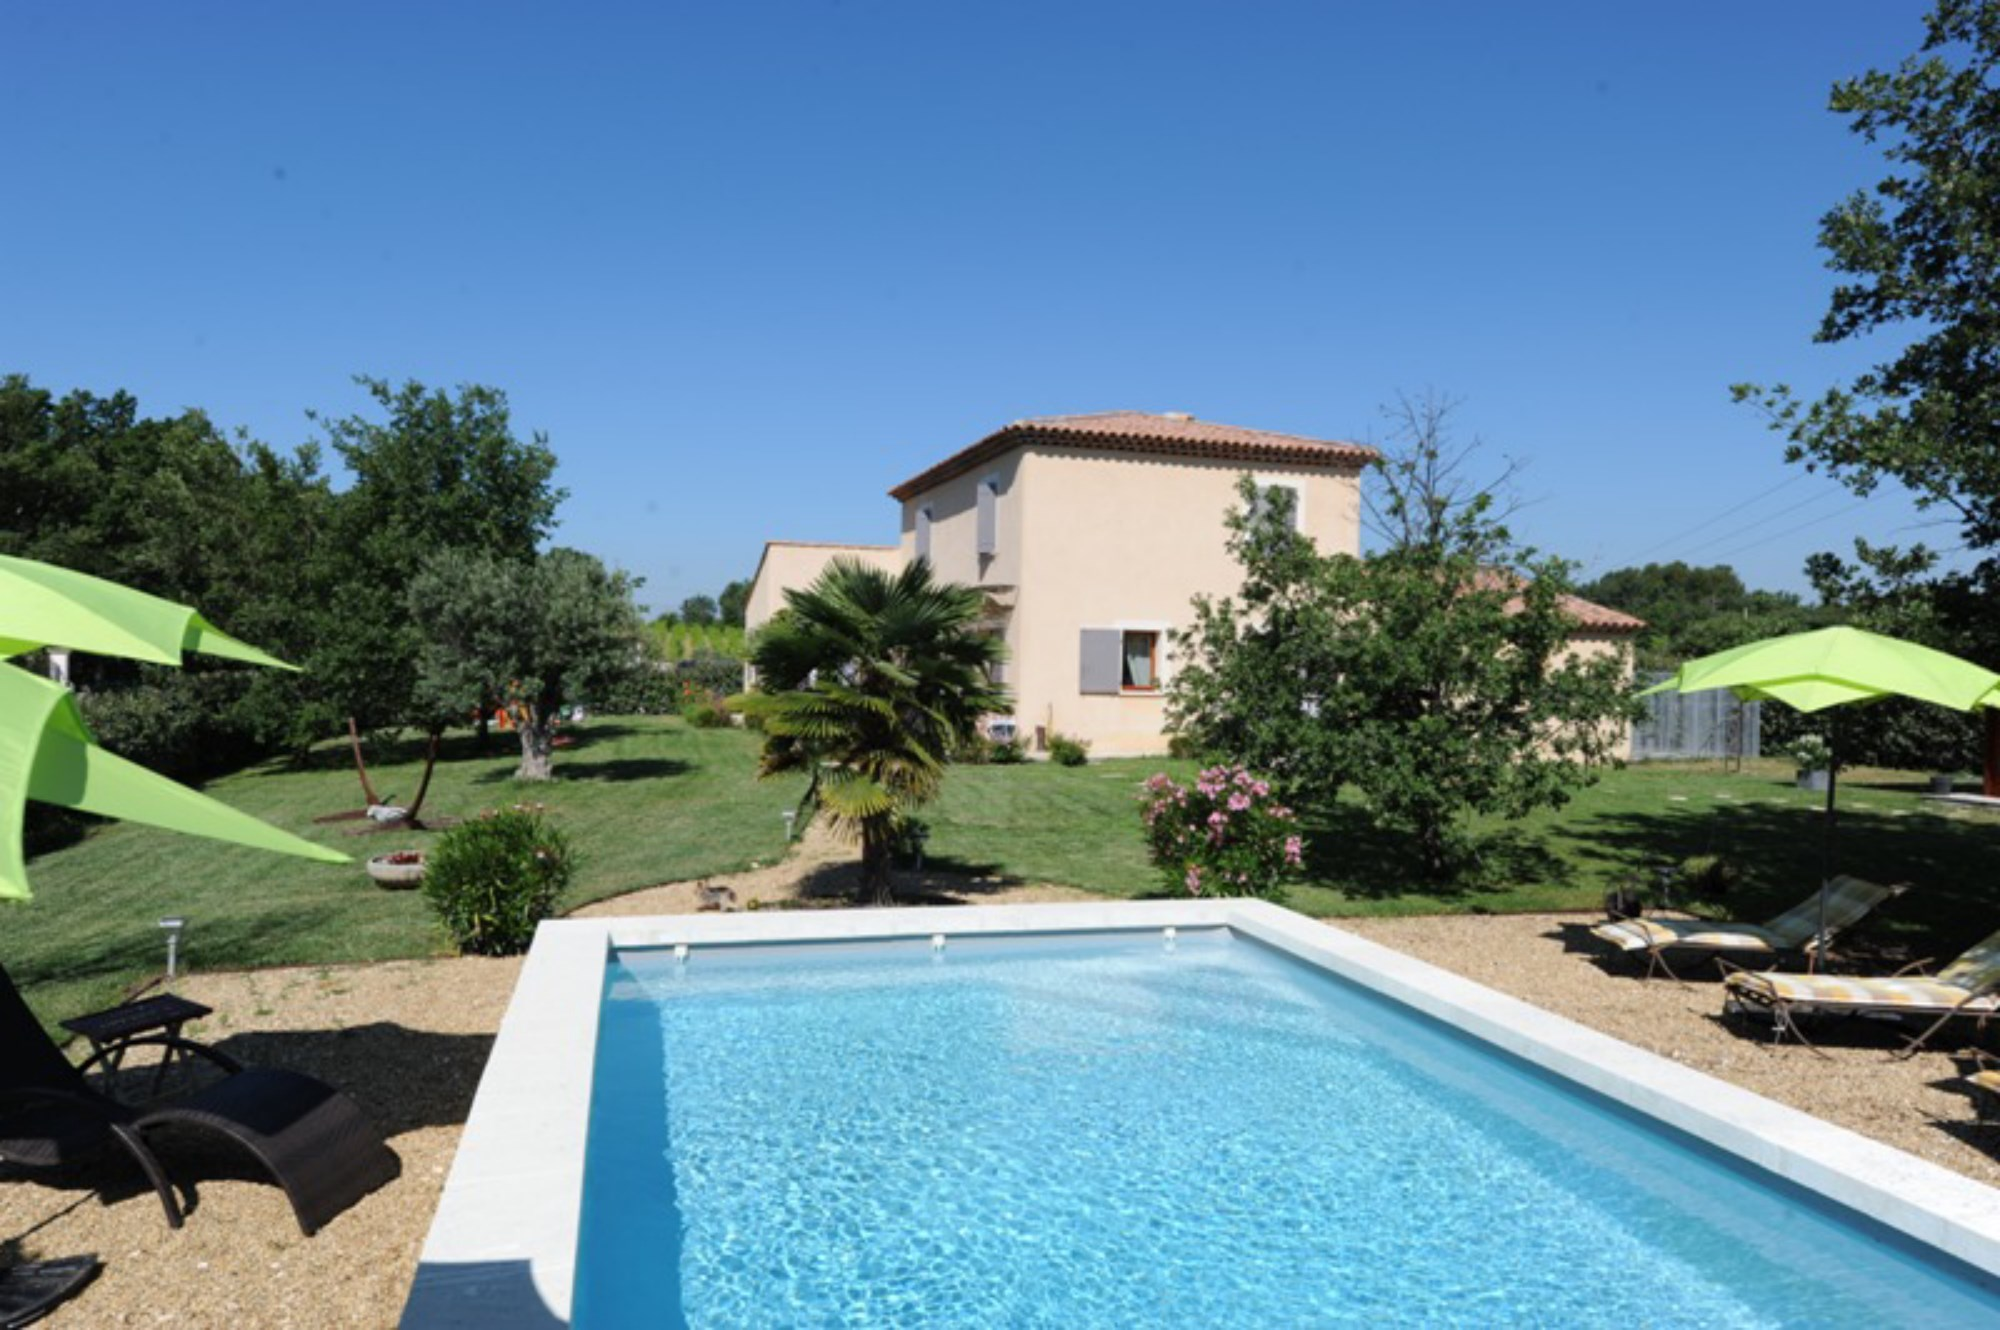 Ventes a vendre pr s d 39 un beau village perch villa for Piscine et jardin kourou